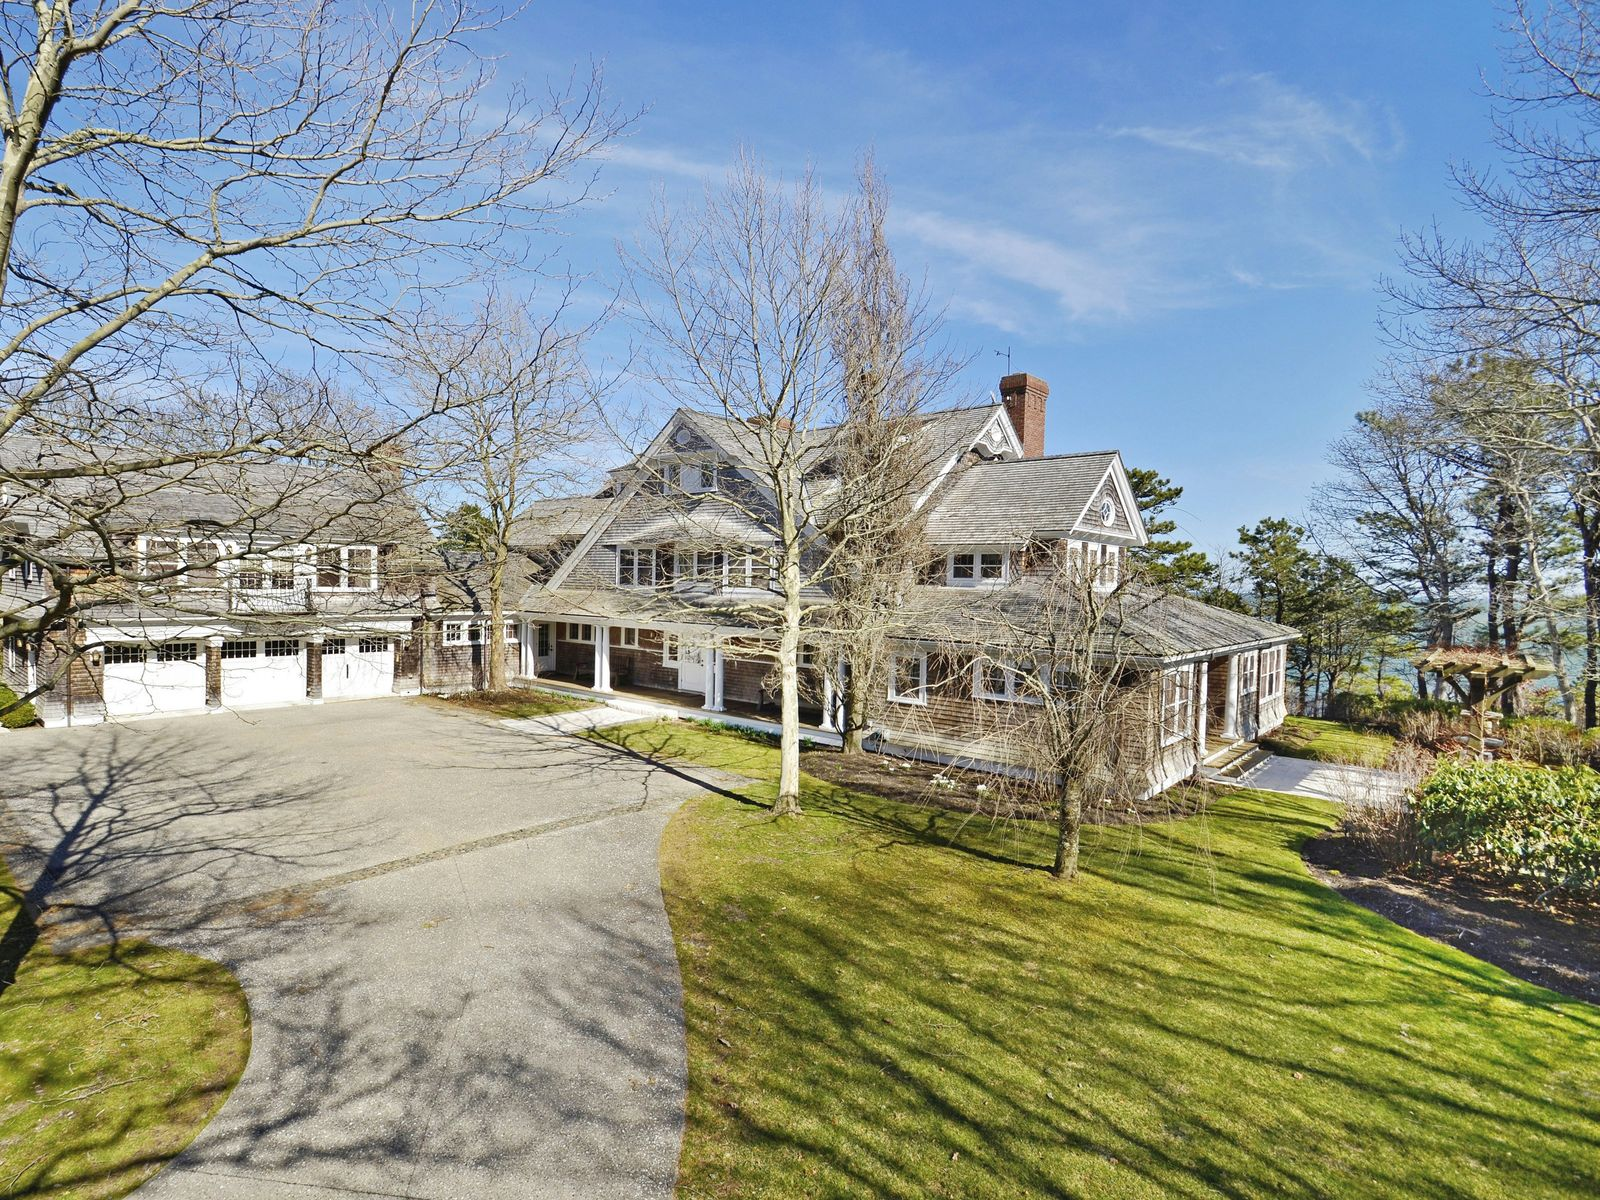 Cotuit Seaside Masterpiece, Cotuit MA Single Family Home - Cape Cod Real Estate